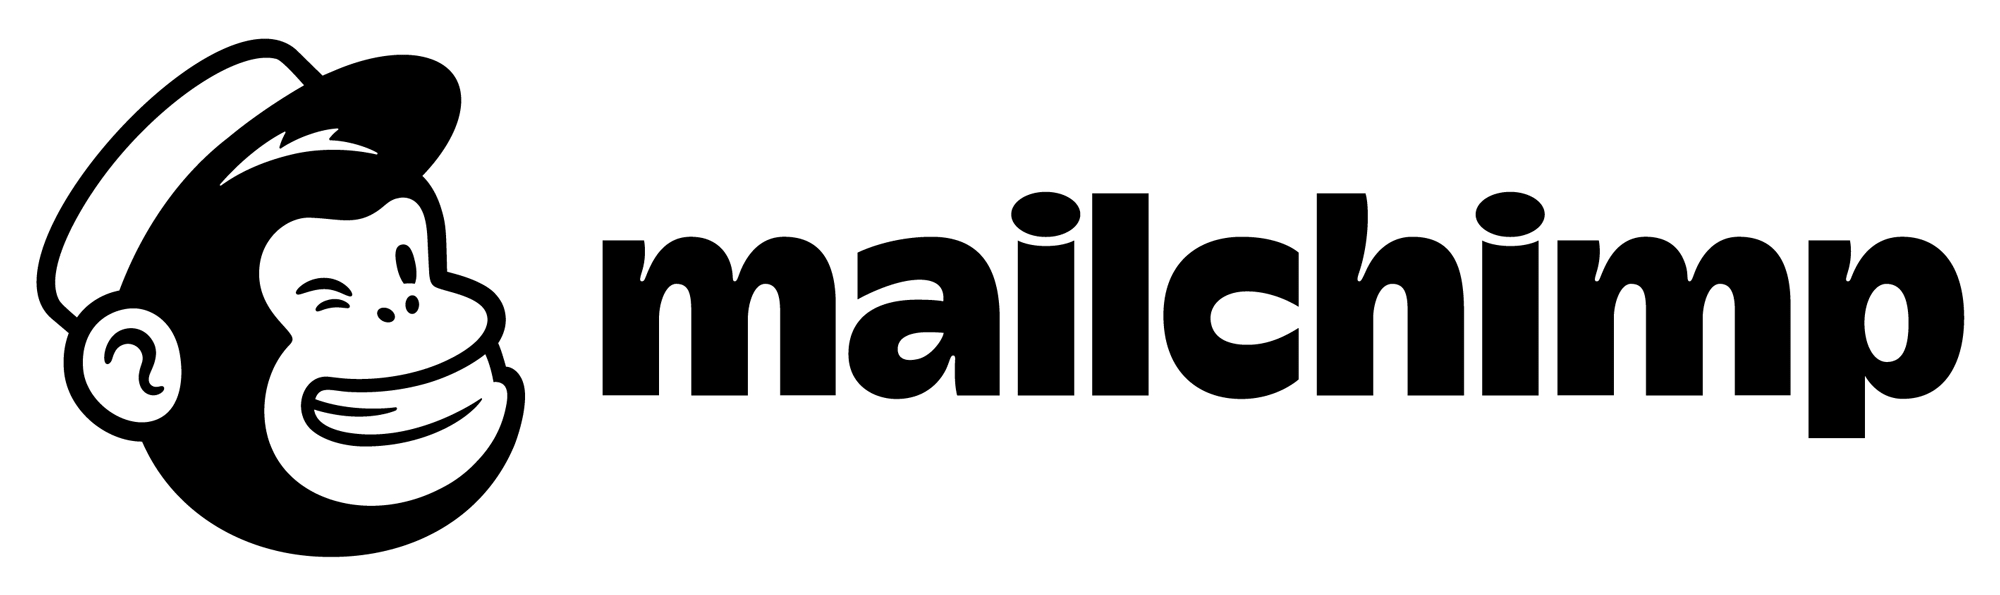 Awesome mailchimp-consultants Experts Available For Project Work Right Now.